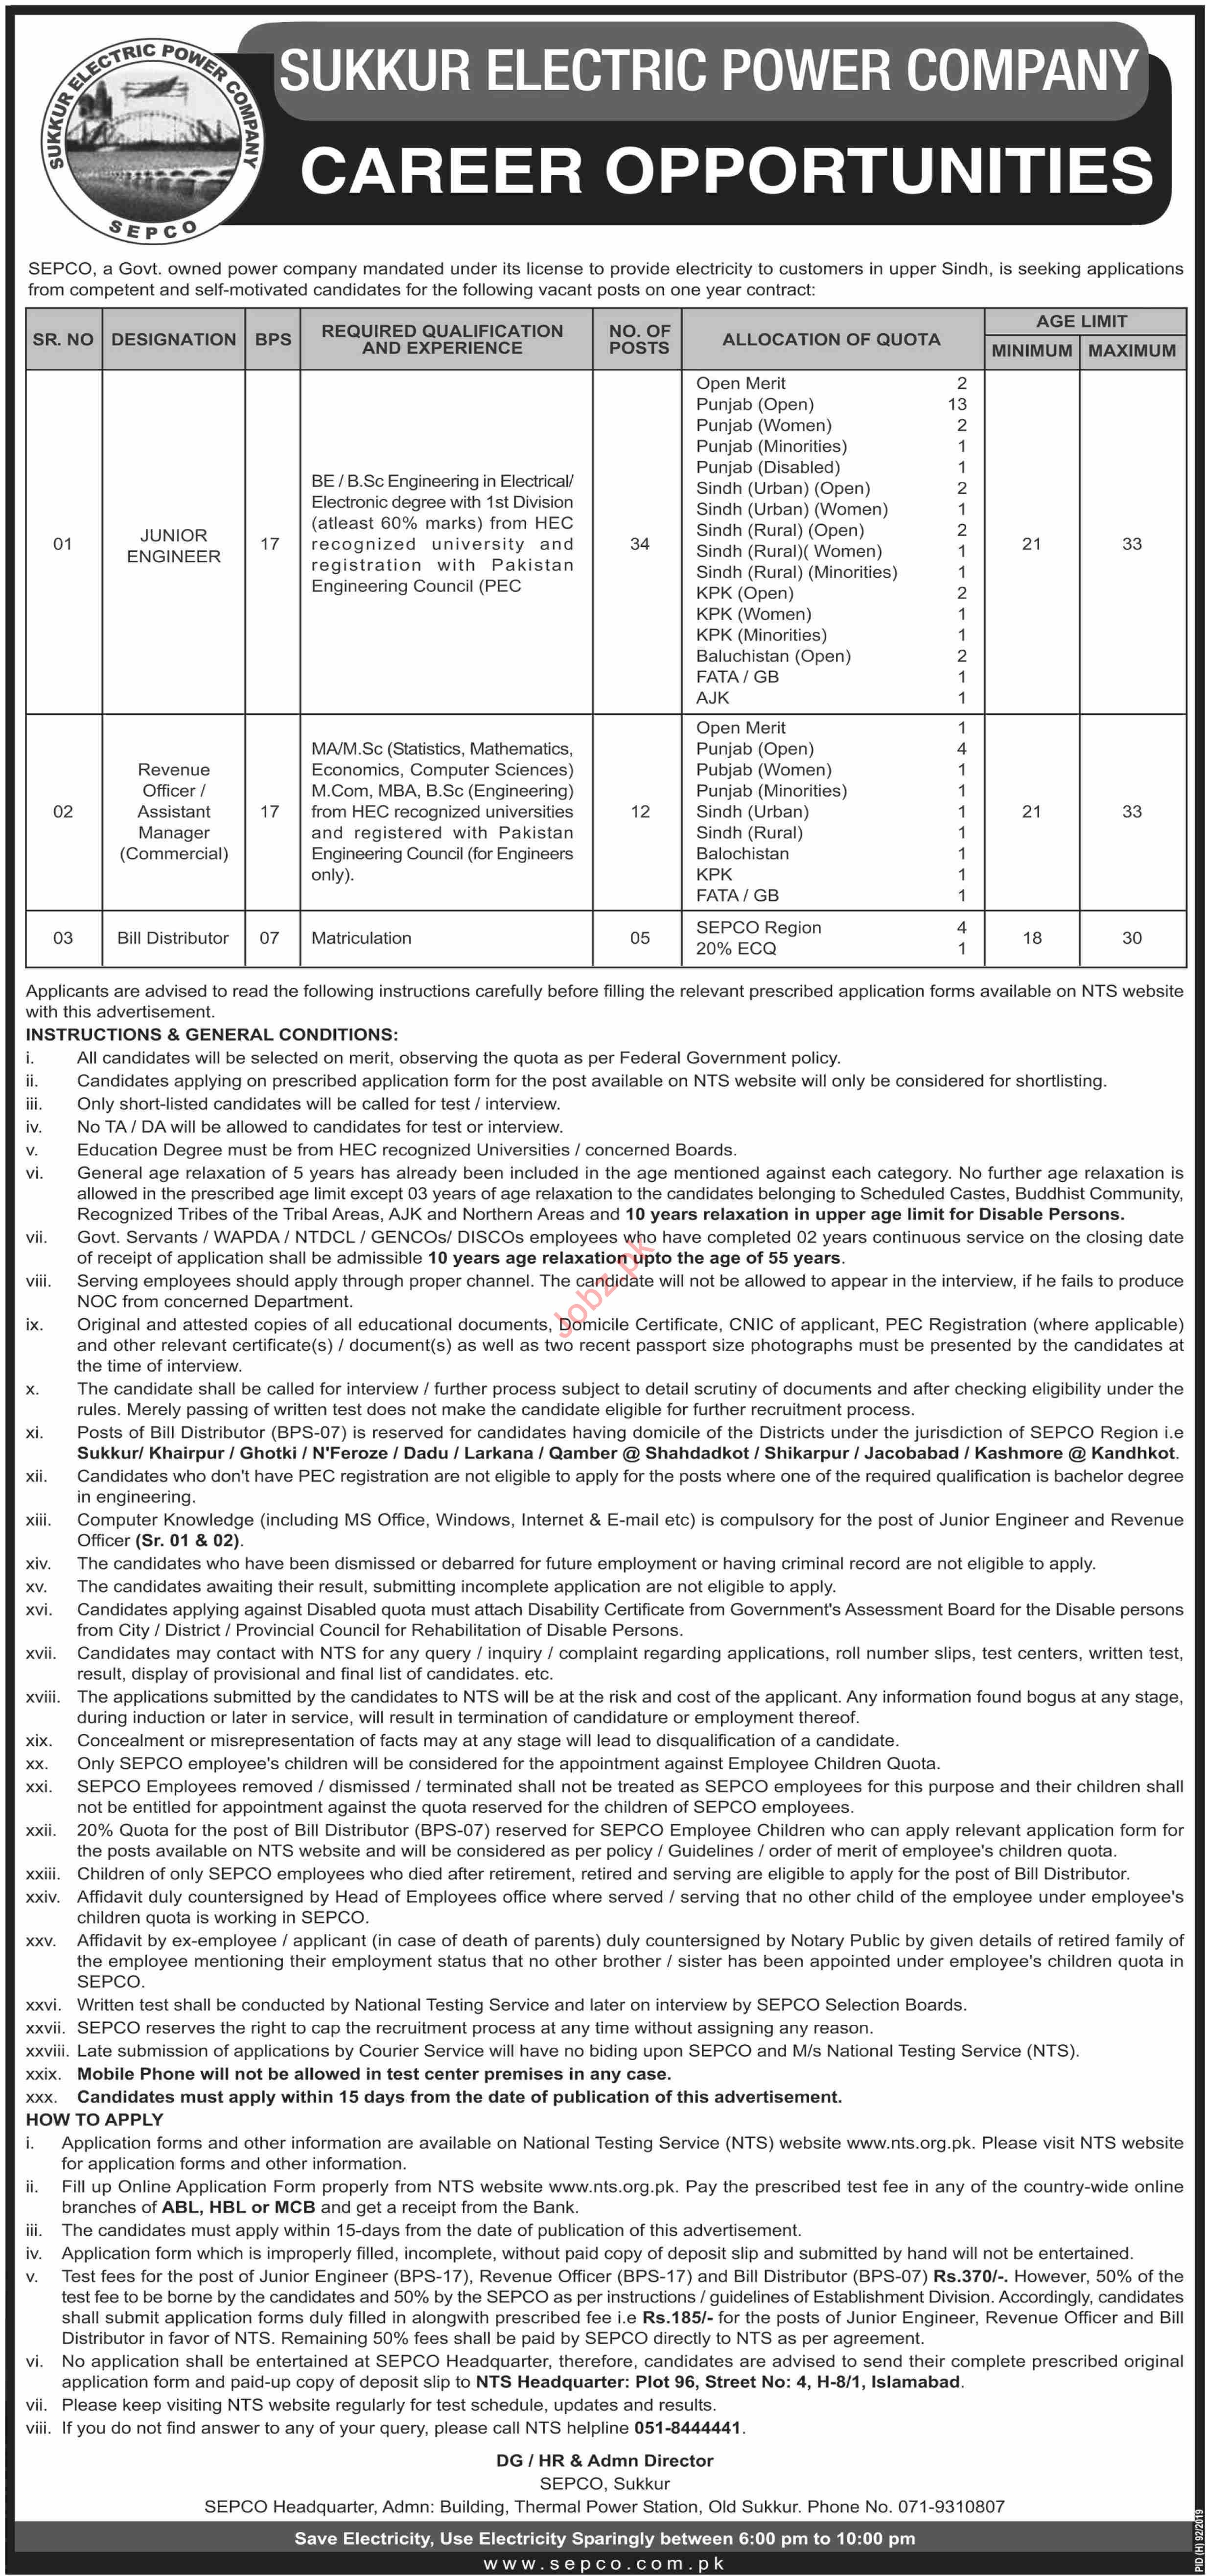 Sukkur Electric Power Company SEPCO Jobs for Engineers